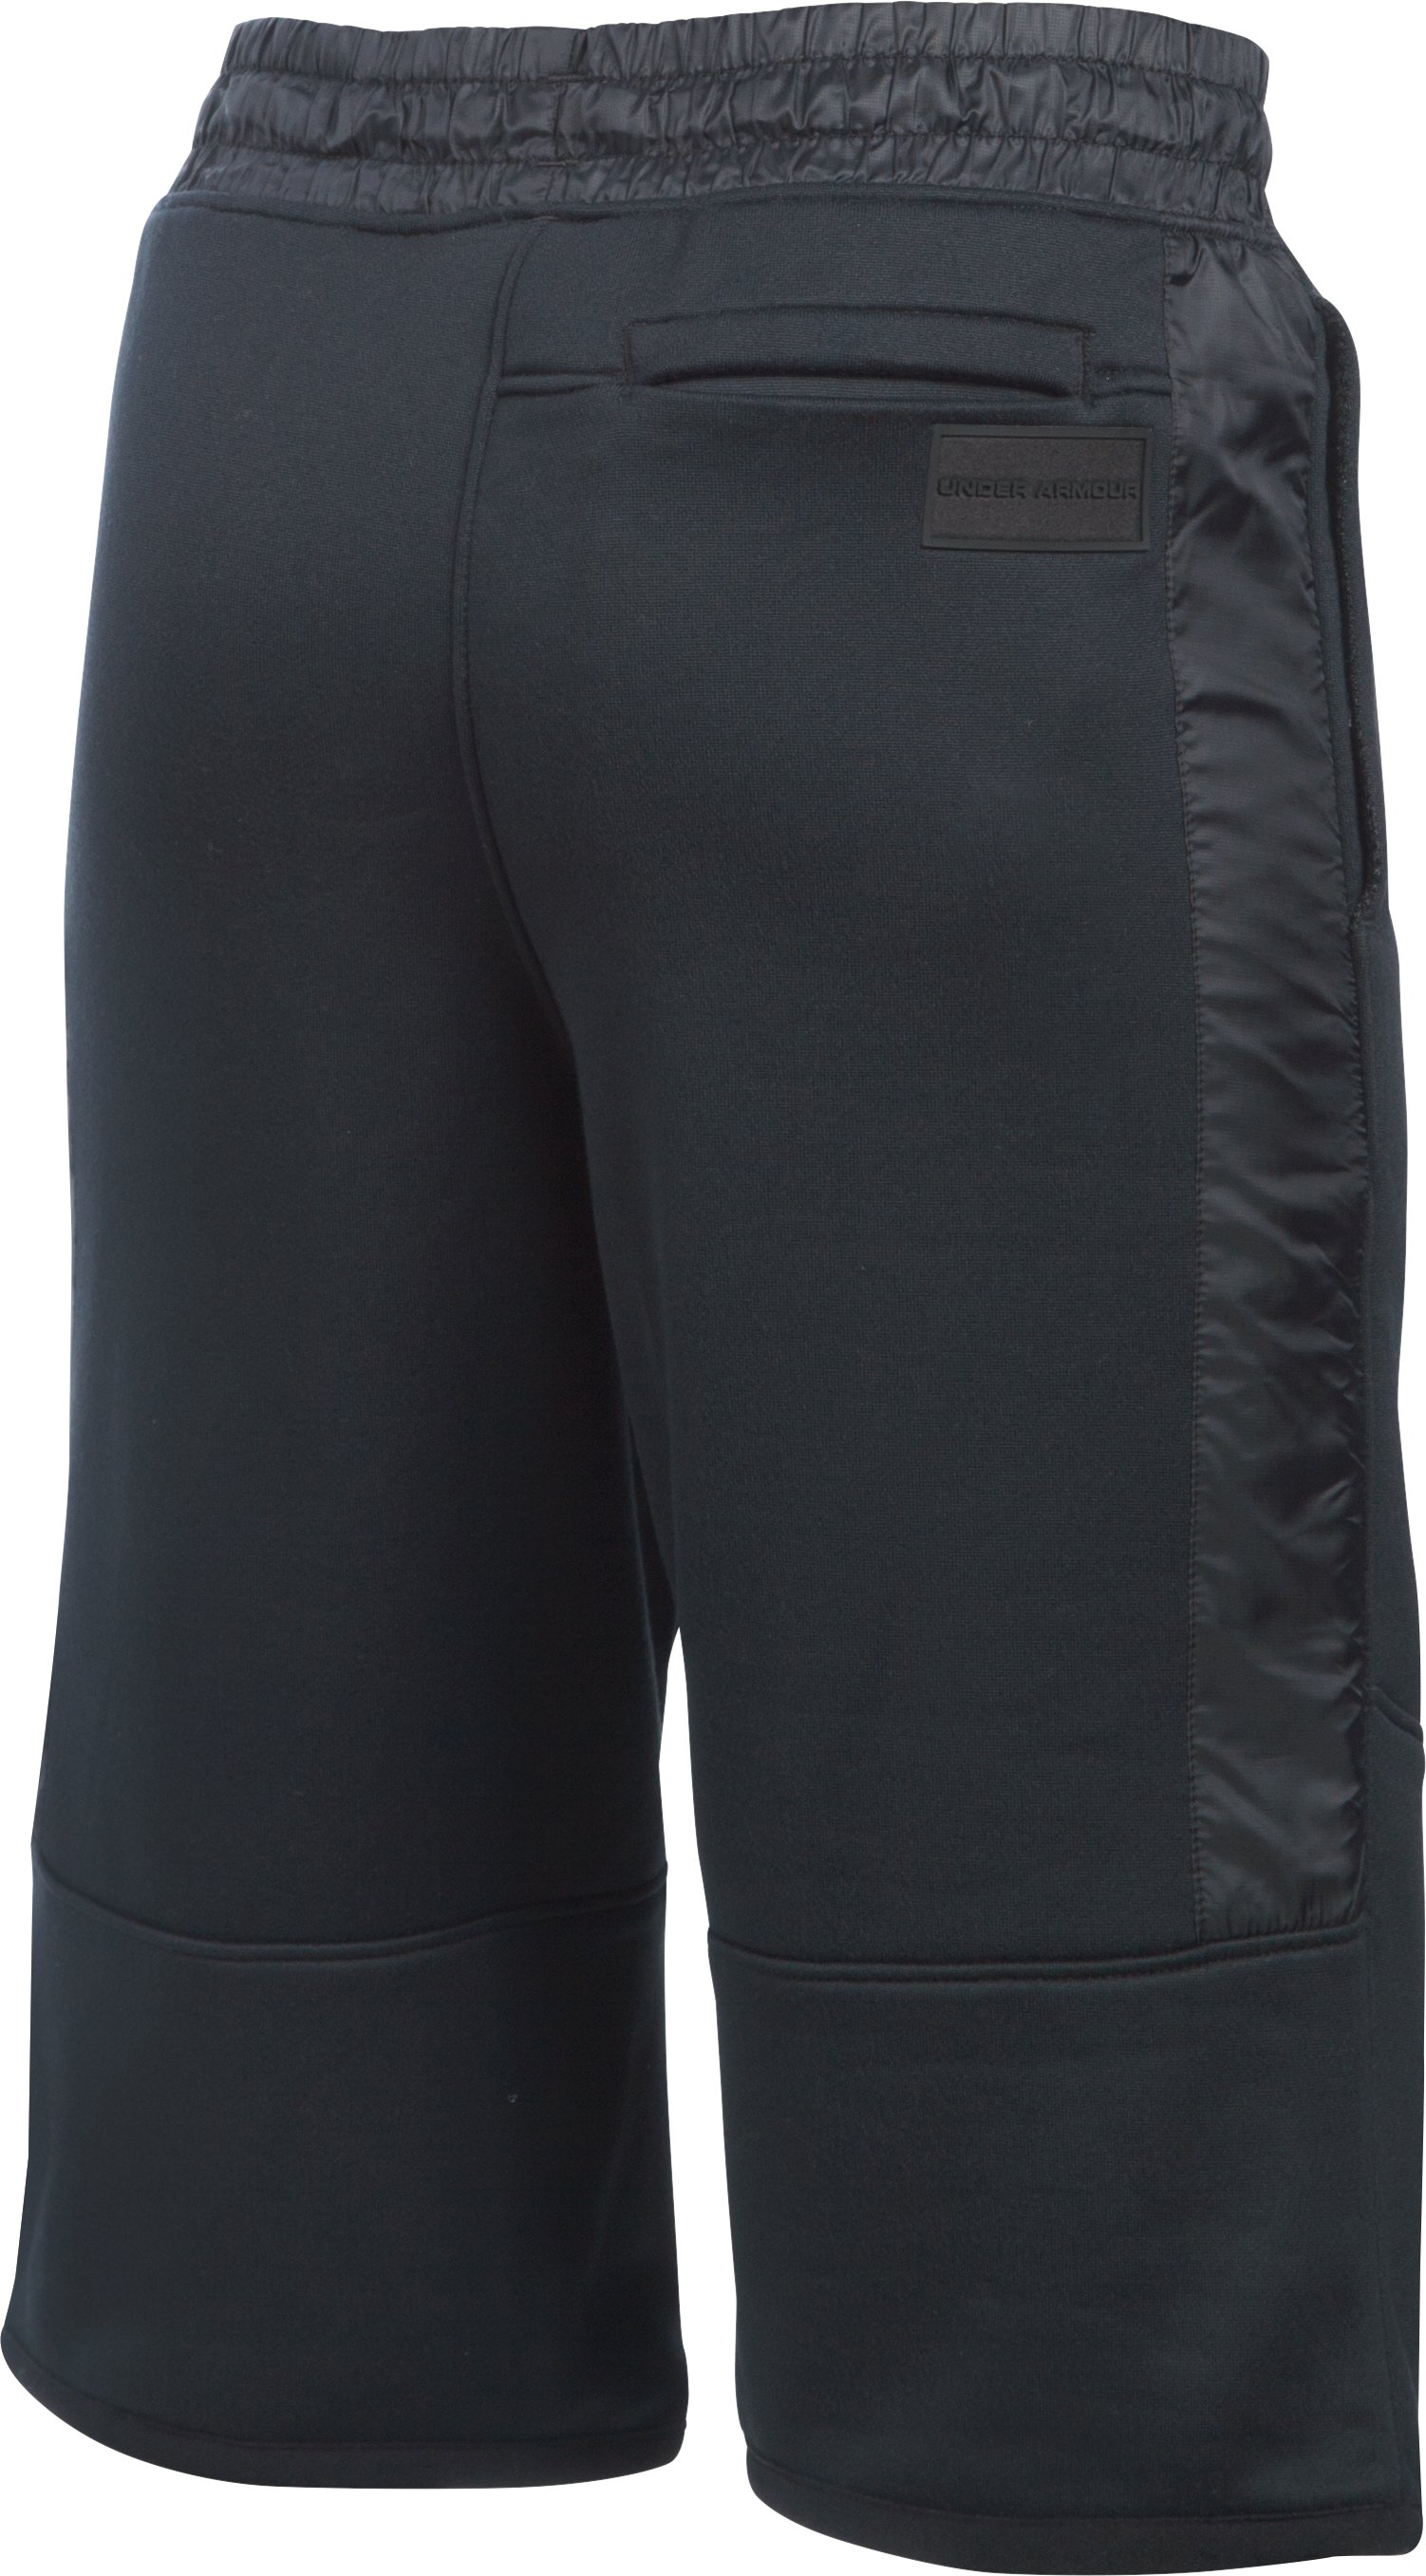 Boys' UA Winners Circle Shorts, Black , undefined